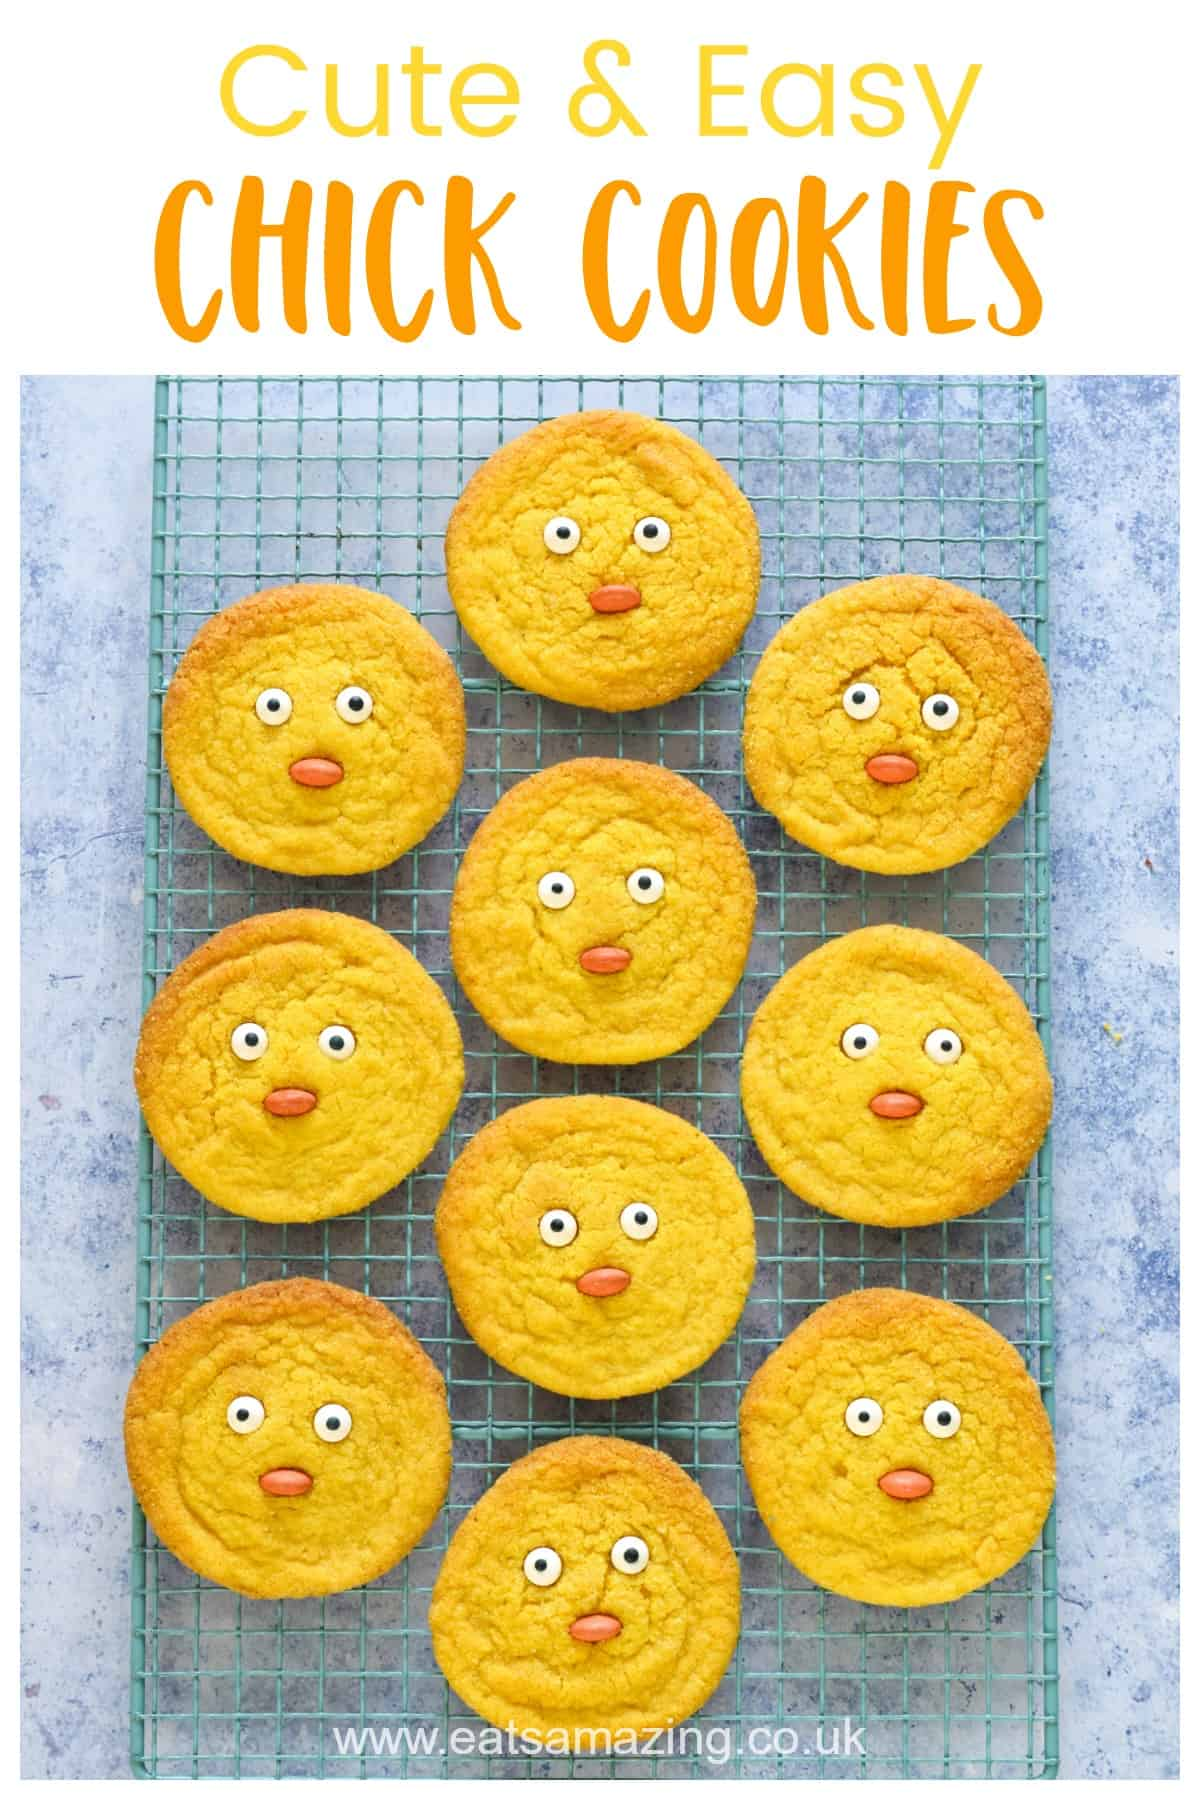 Cute chick cookies recipe - fun and easy Easter recipe for kids